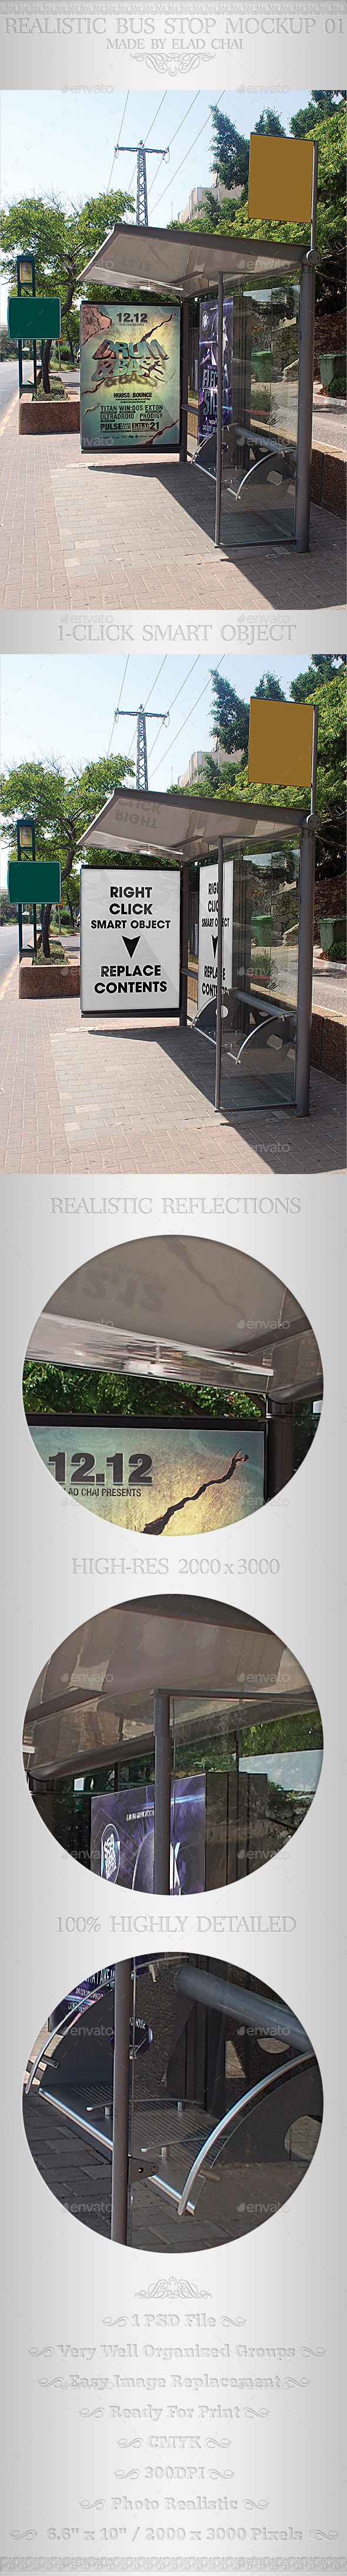 Realistic Bus Stop Flyer Poster Mockup 02 - Signage Print